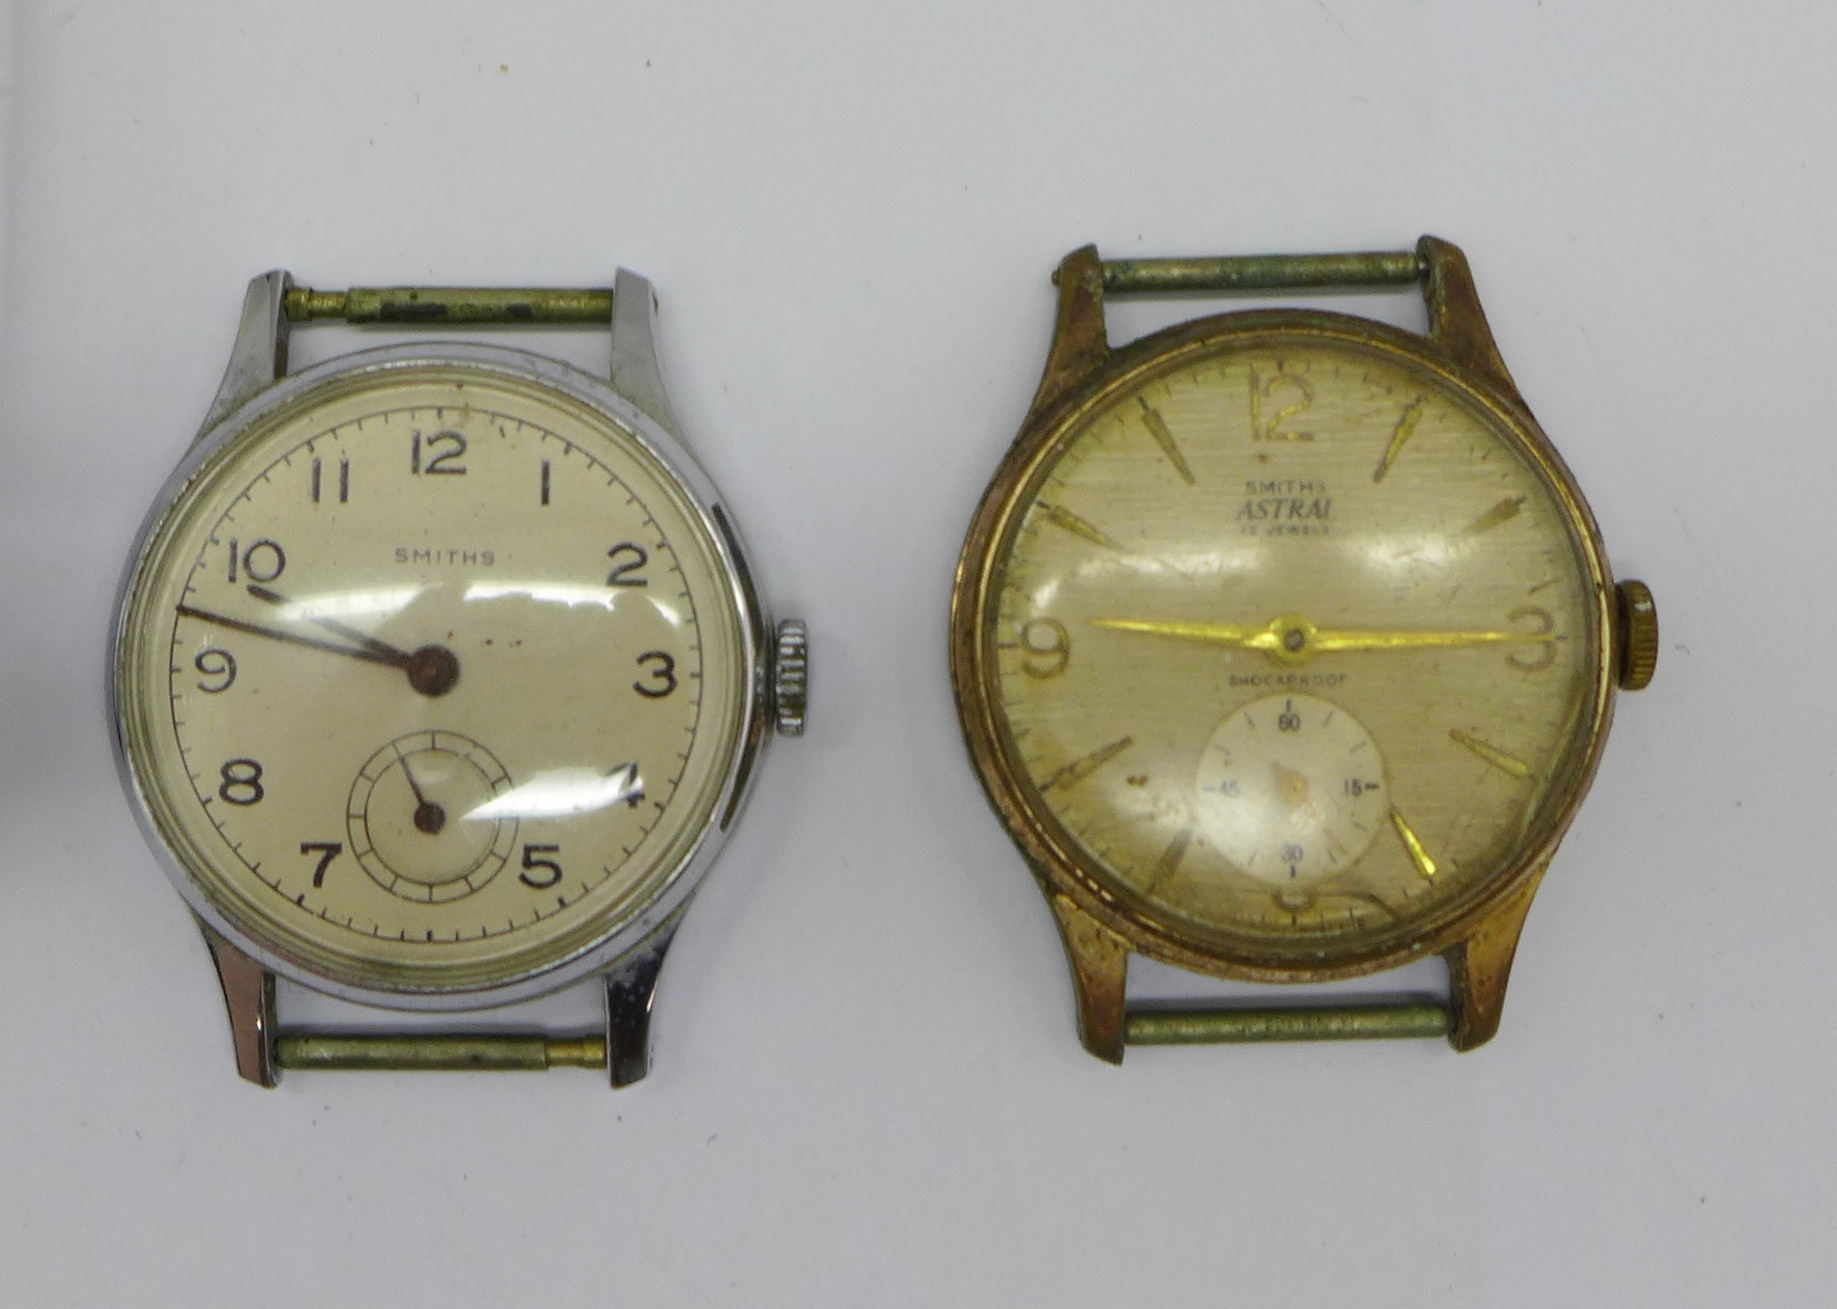 A Smiths Astral, Smiths Astrolon and one other Smiths wristwatch with De Luxe movement - Image 2 of 5